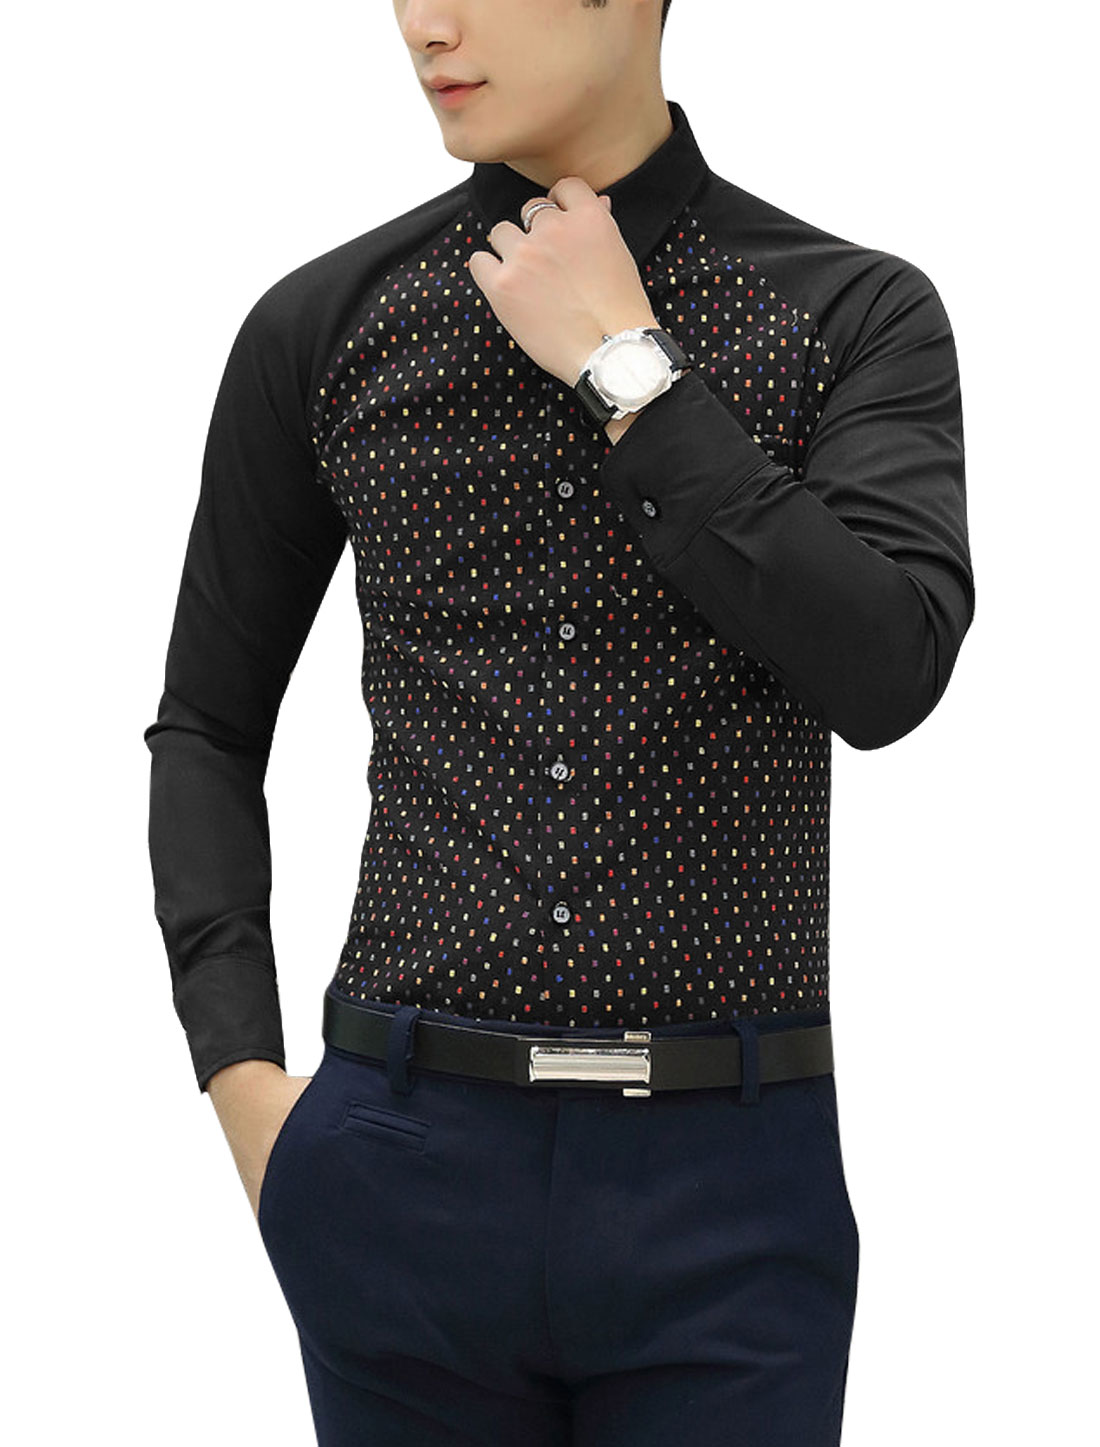 Men Point Collar Button Closure Leisure Shirts Black S